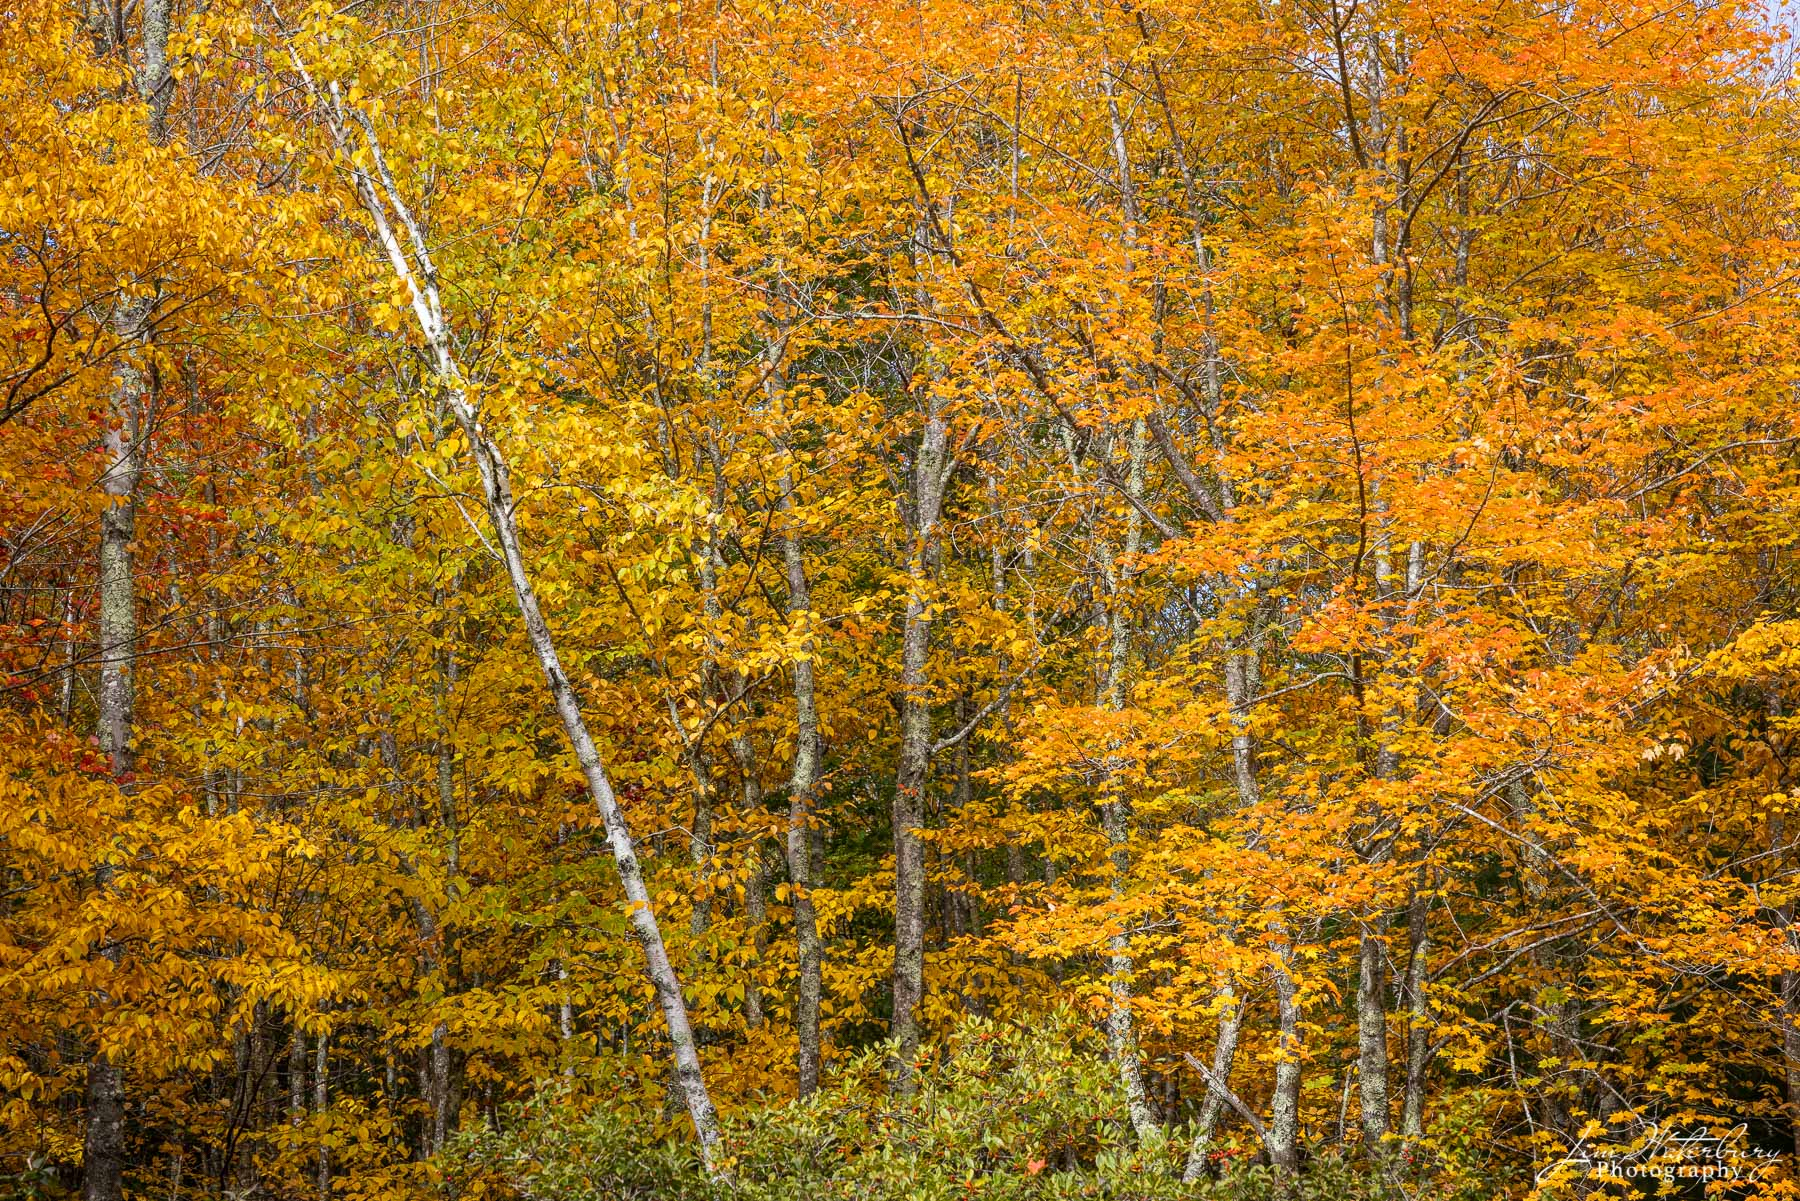 A panorama of fall foliage, interrupted by a falling birch tree.